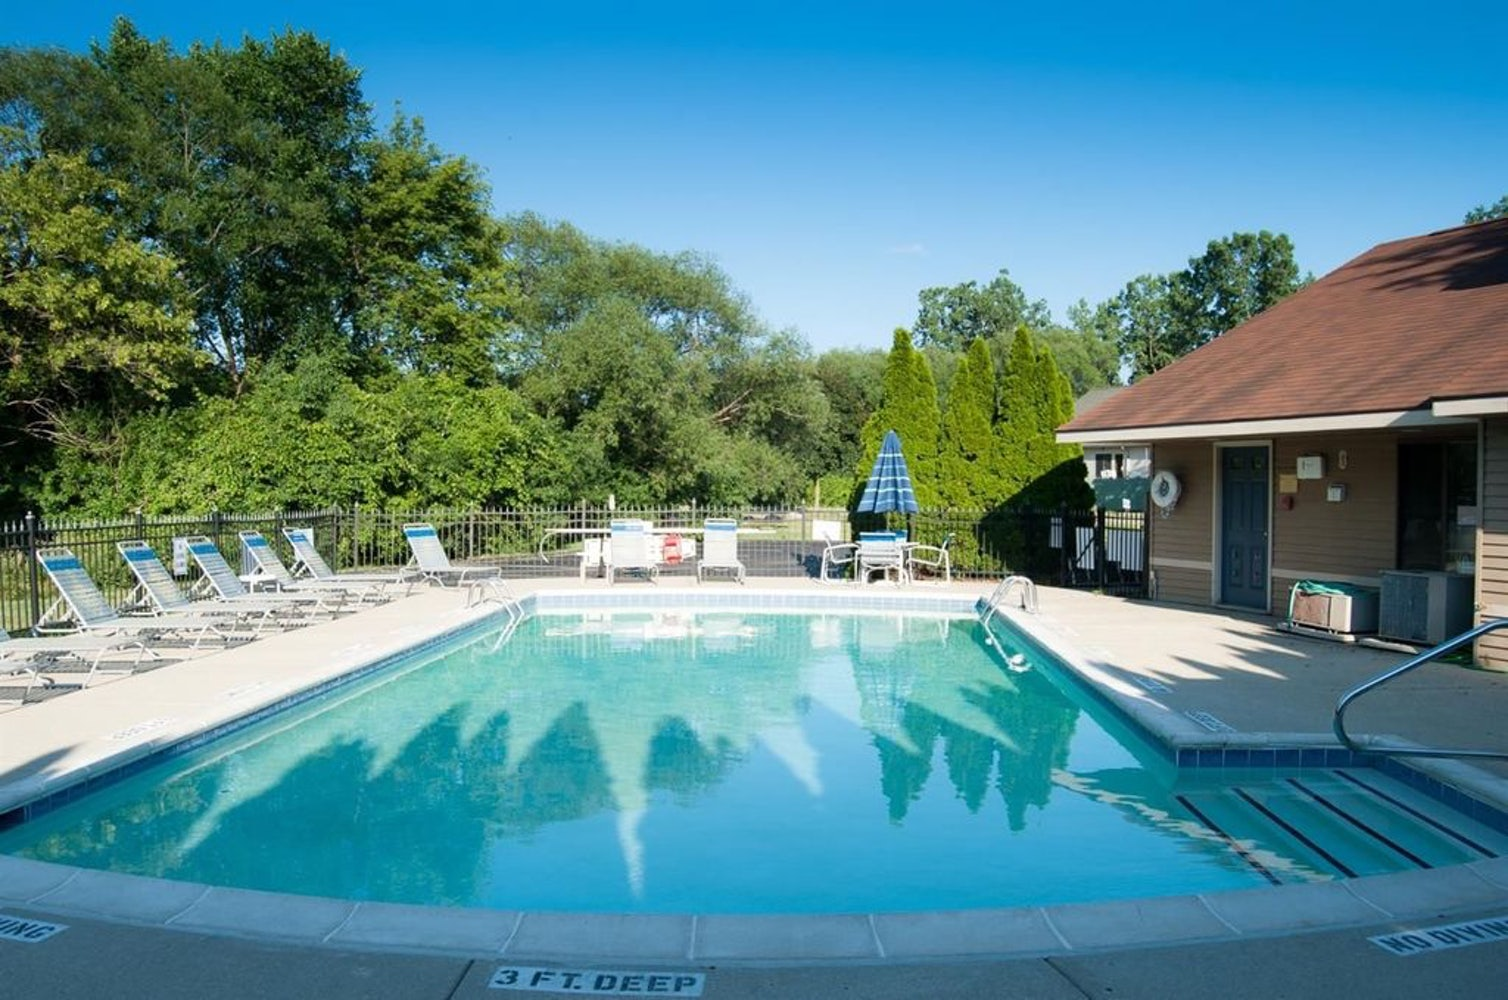 WeRentCondos 2 BR 2 Bath Ann Arbor Condo AATA Bus Line Pool Washer ...